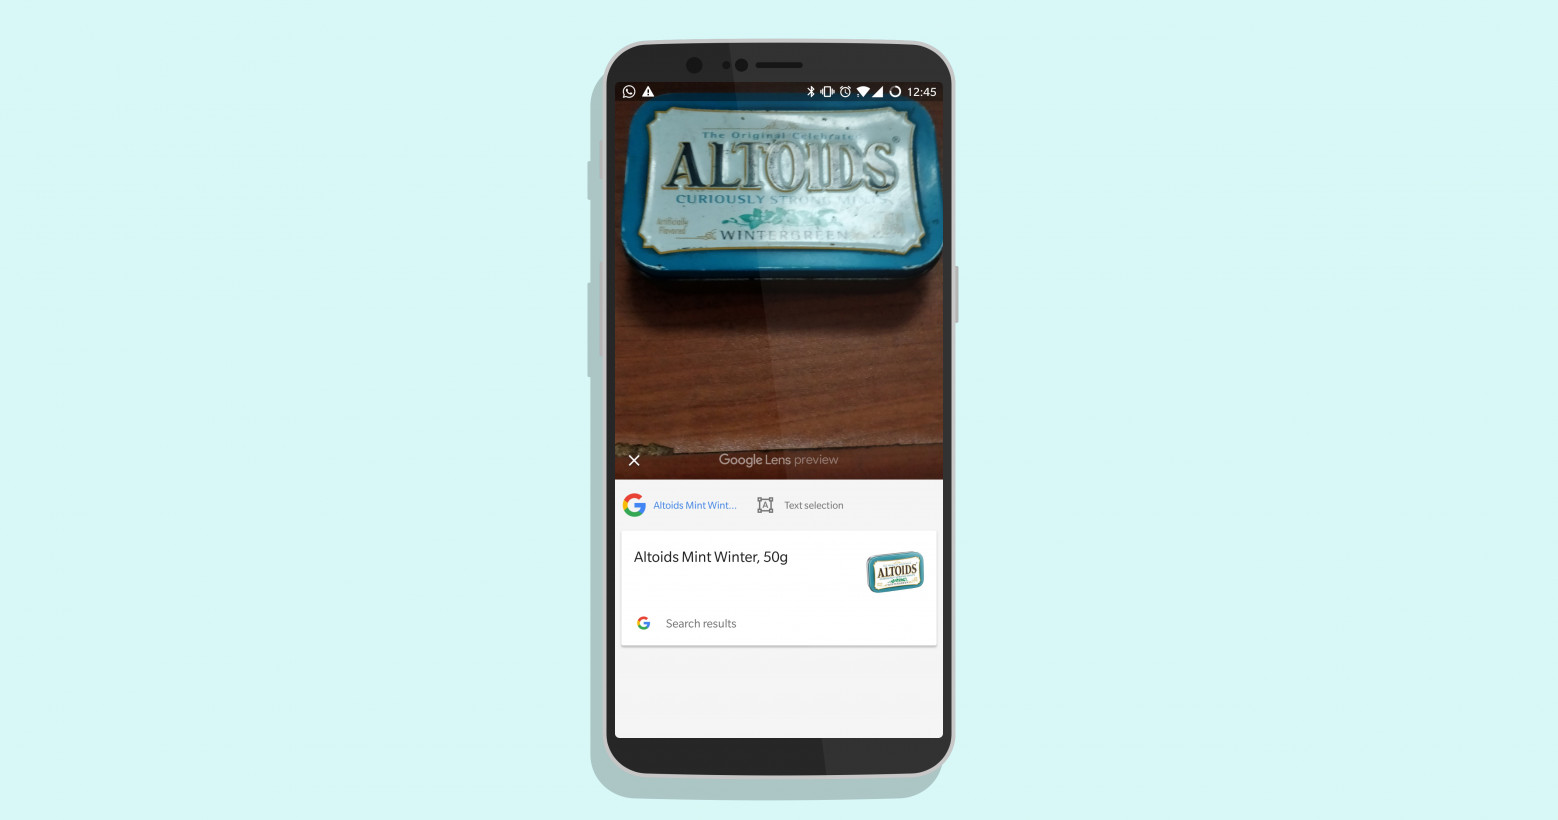 Google will start earning even more money from your shopping searches